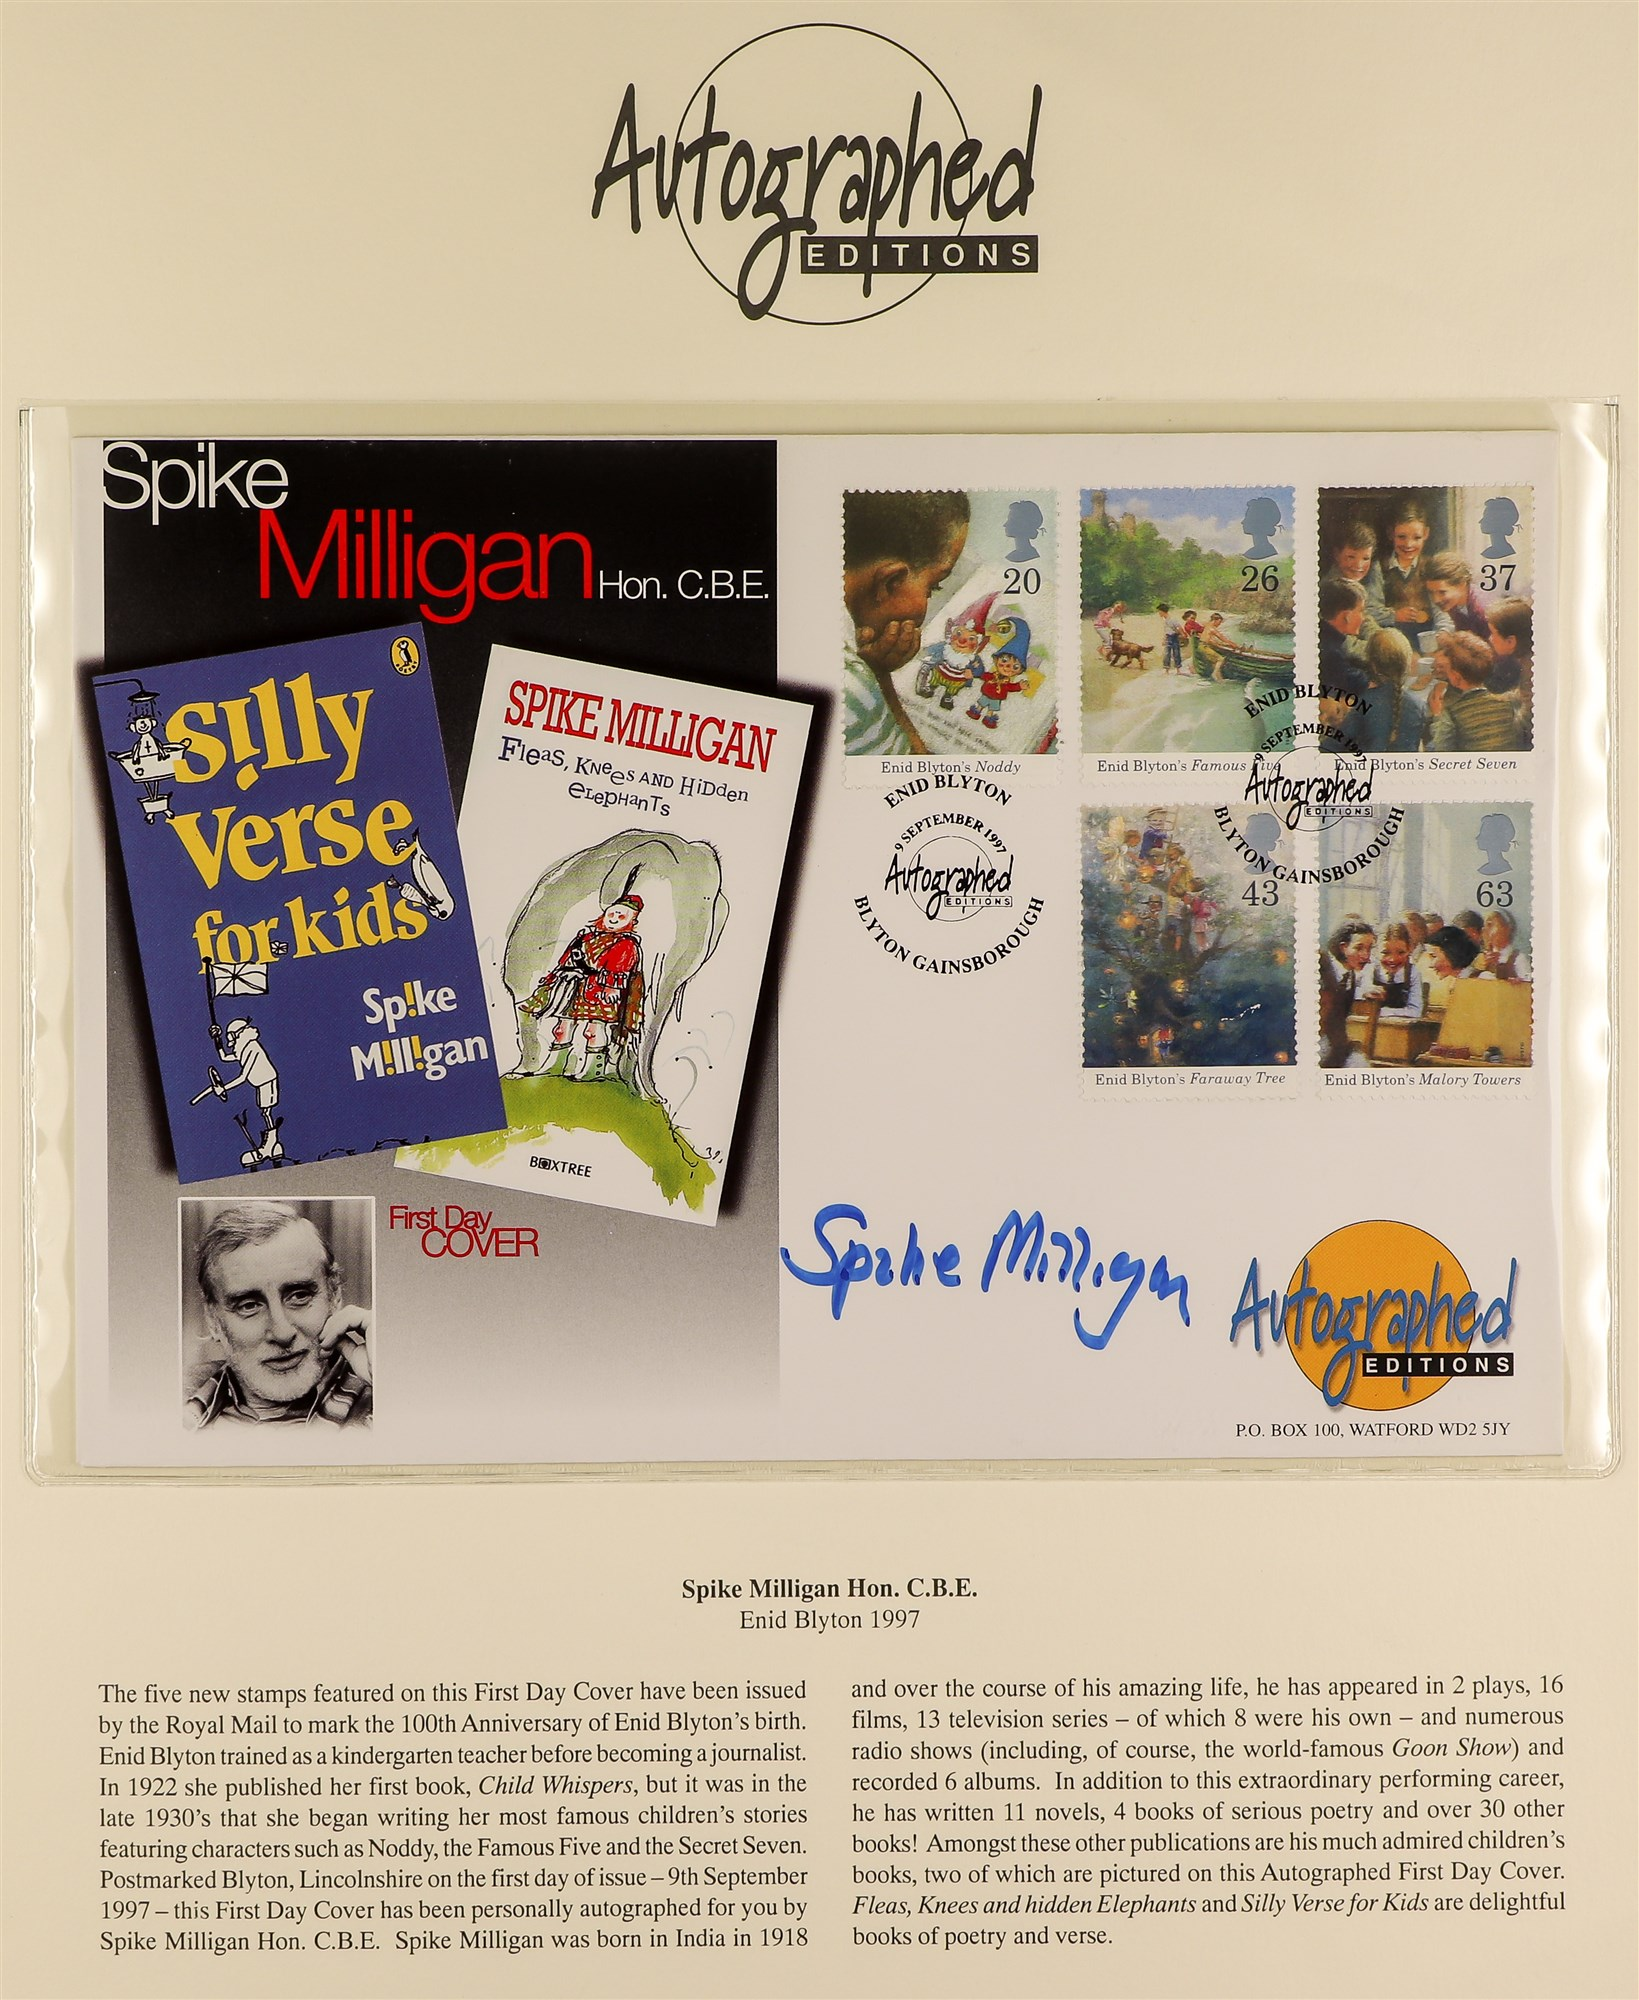 GREAT BRITAIN 1997-98 AUTOGRAPHED COVERS - COMEDIANS 1997 Enid Blyton FDC with illustration of and